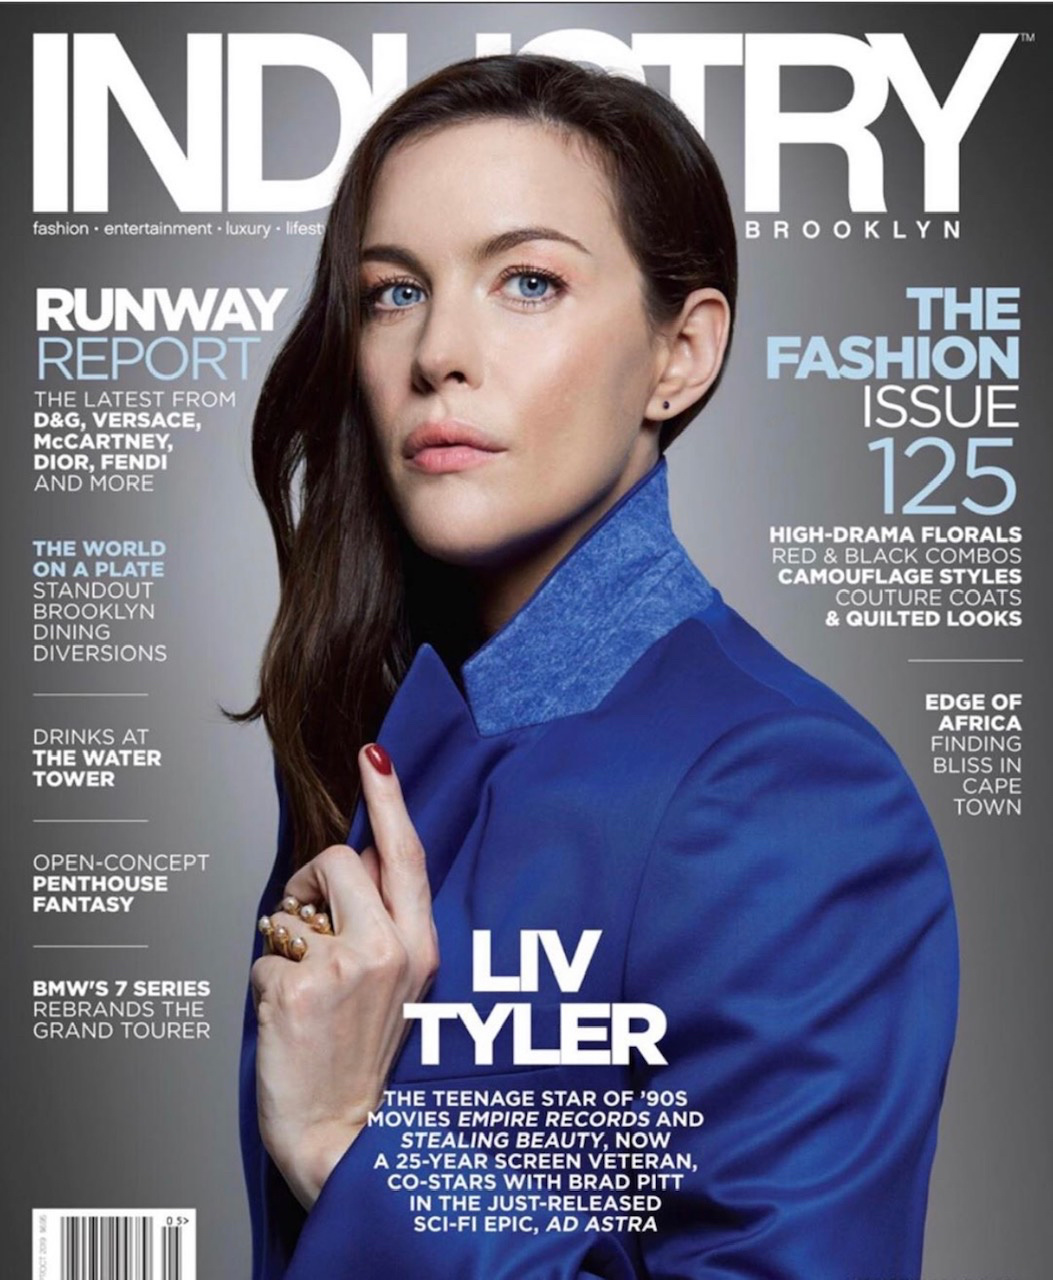 Industry Magazine Fall Issue September/October 2019